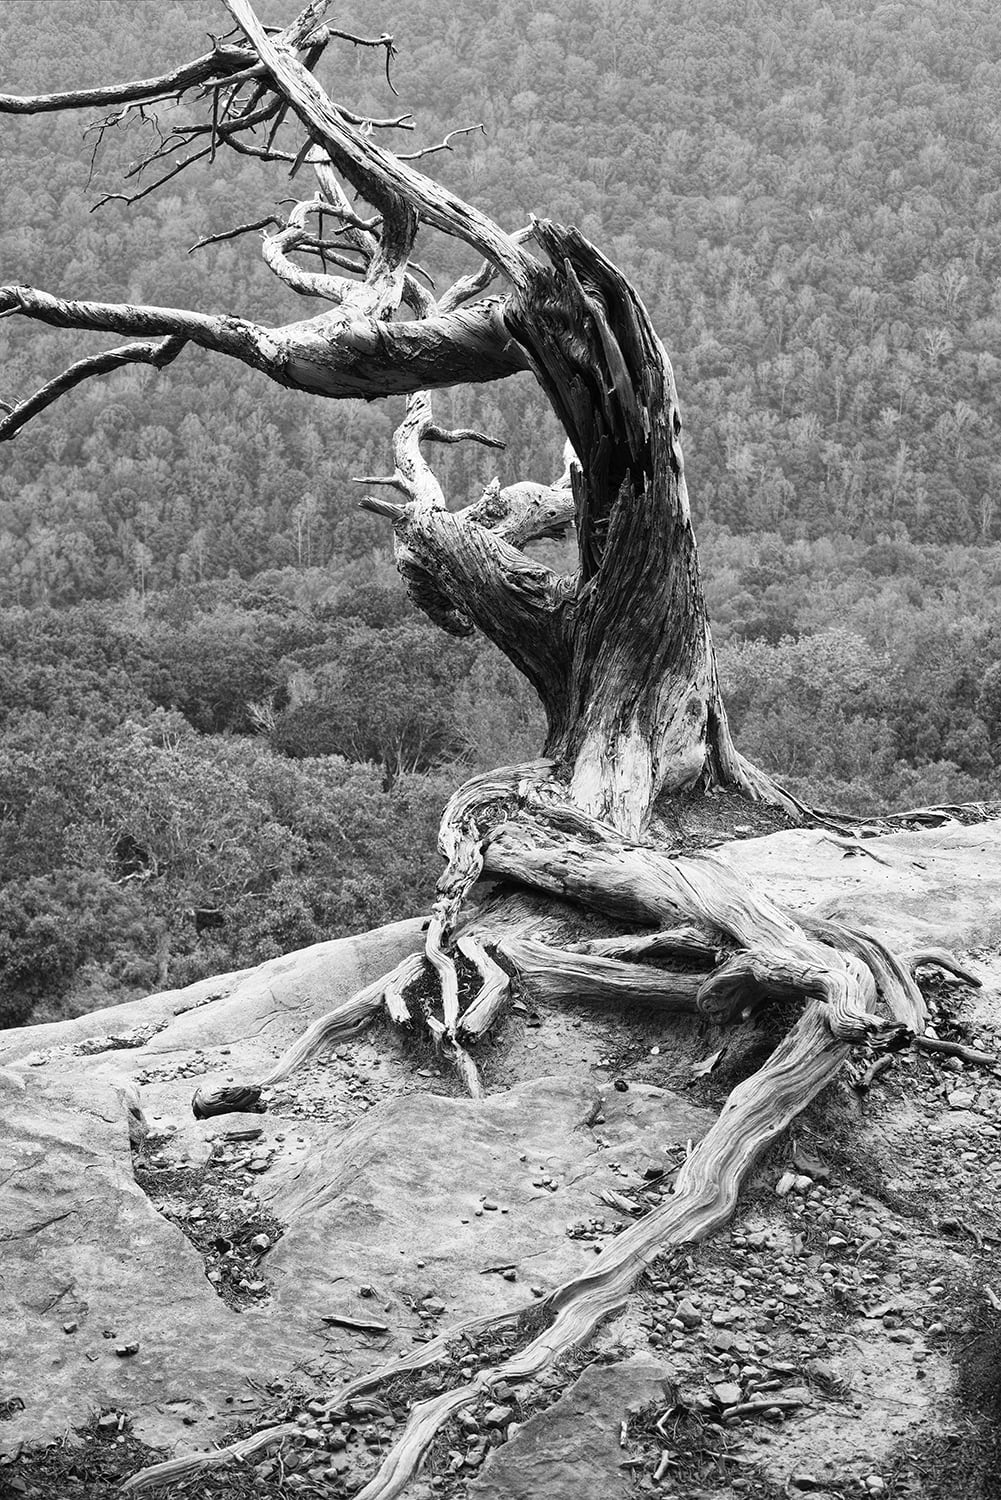 Living on the Edge, a black and white photograph by Keith Dotson.